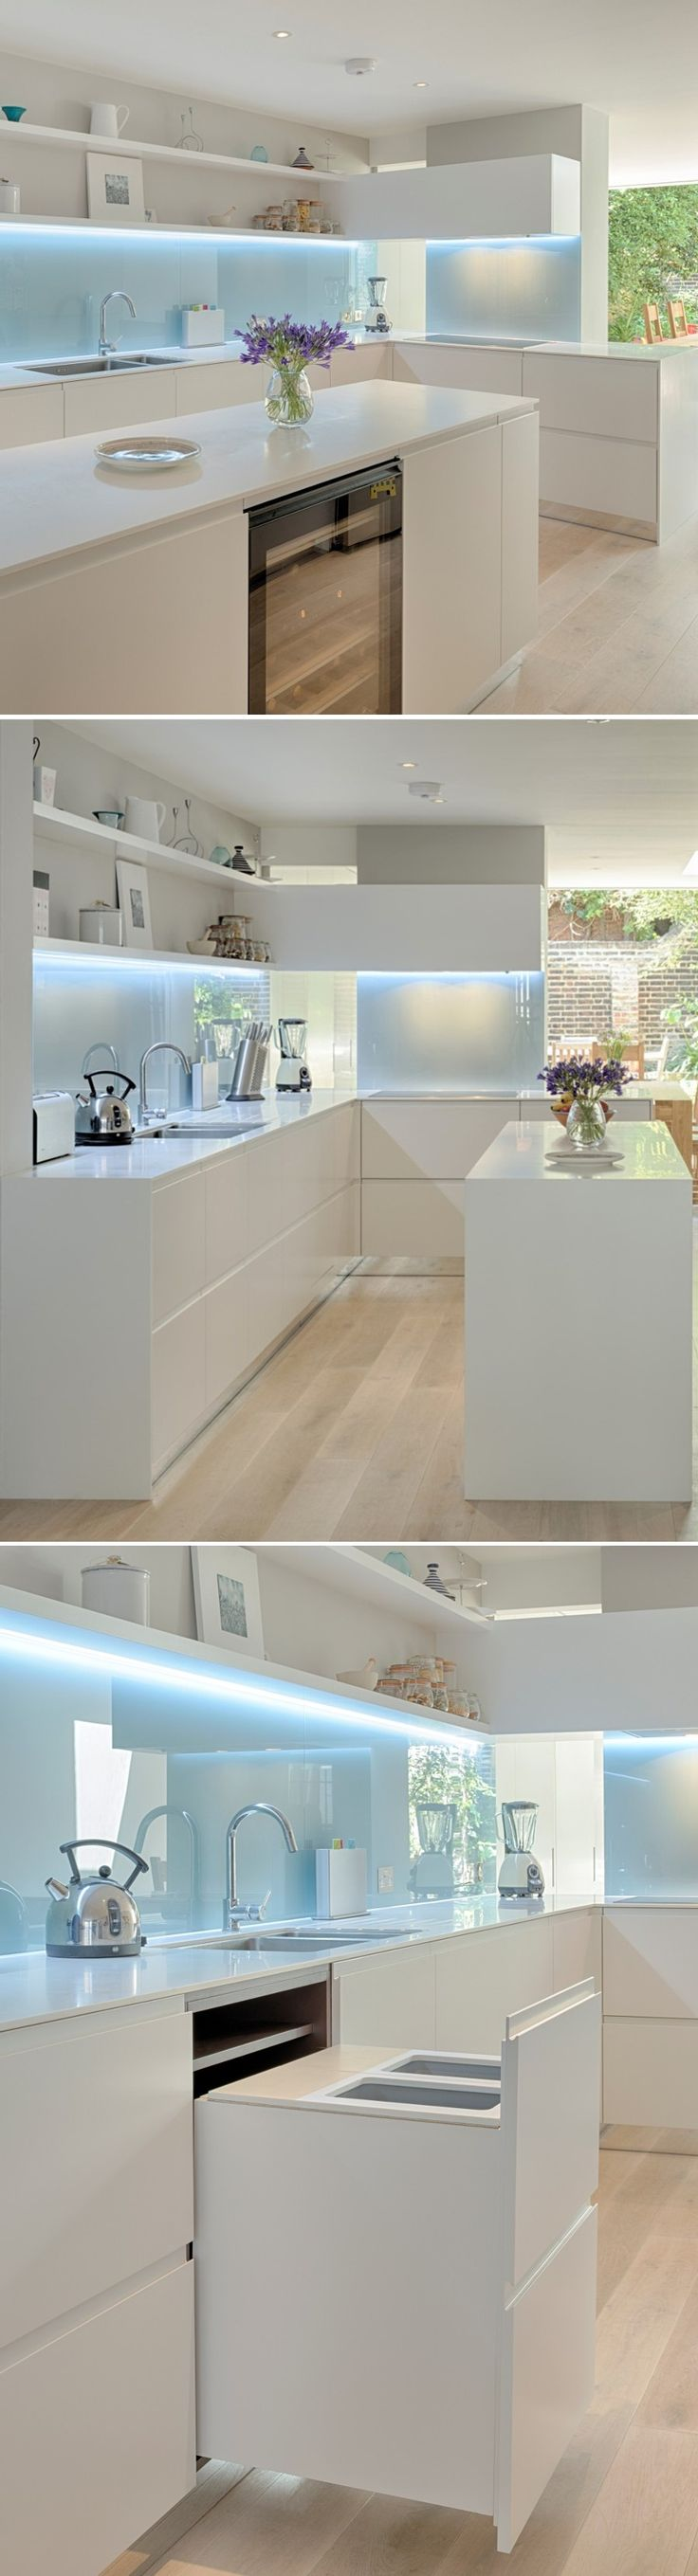 INTERIOR-iD Kitchen in coloured satin matt lacquer with glacier white corian worktop and back painted glass splashback. Design by MWAI Architects.